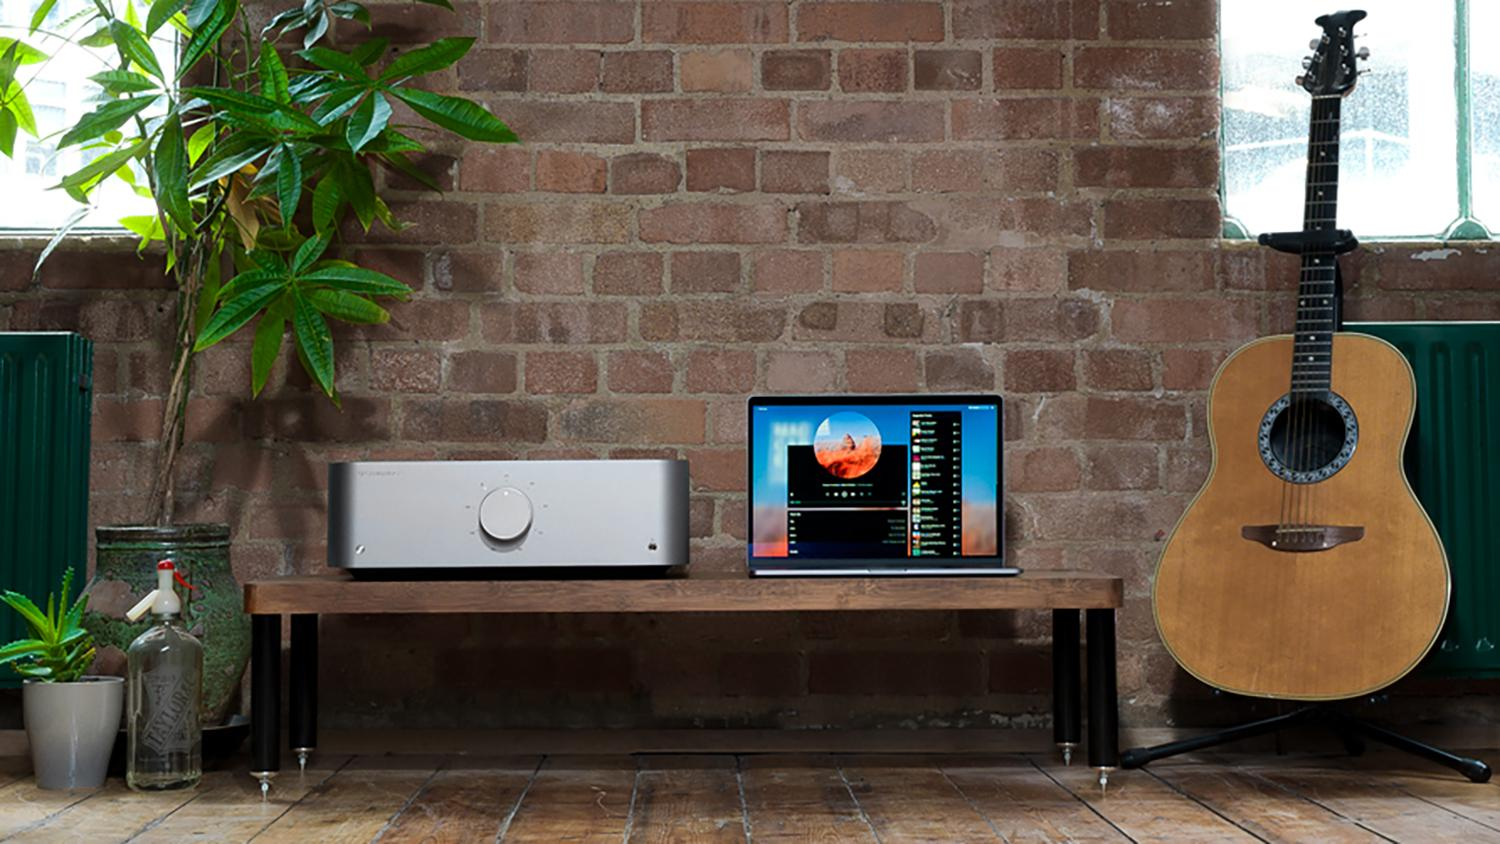 Edge A Integrated Amplifier, laptop and guitar